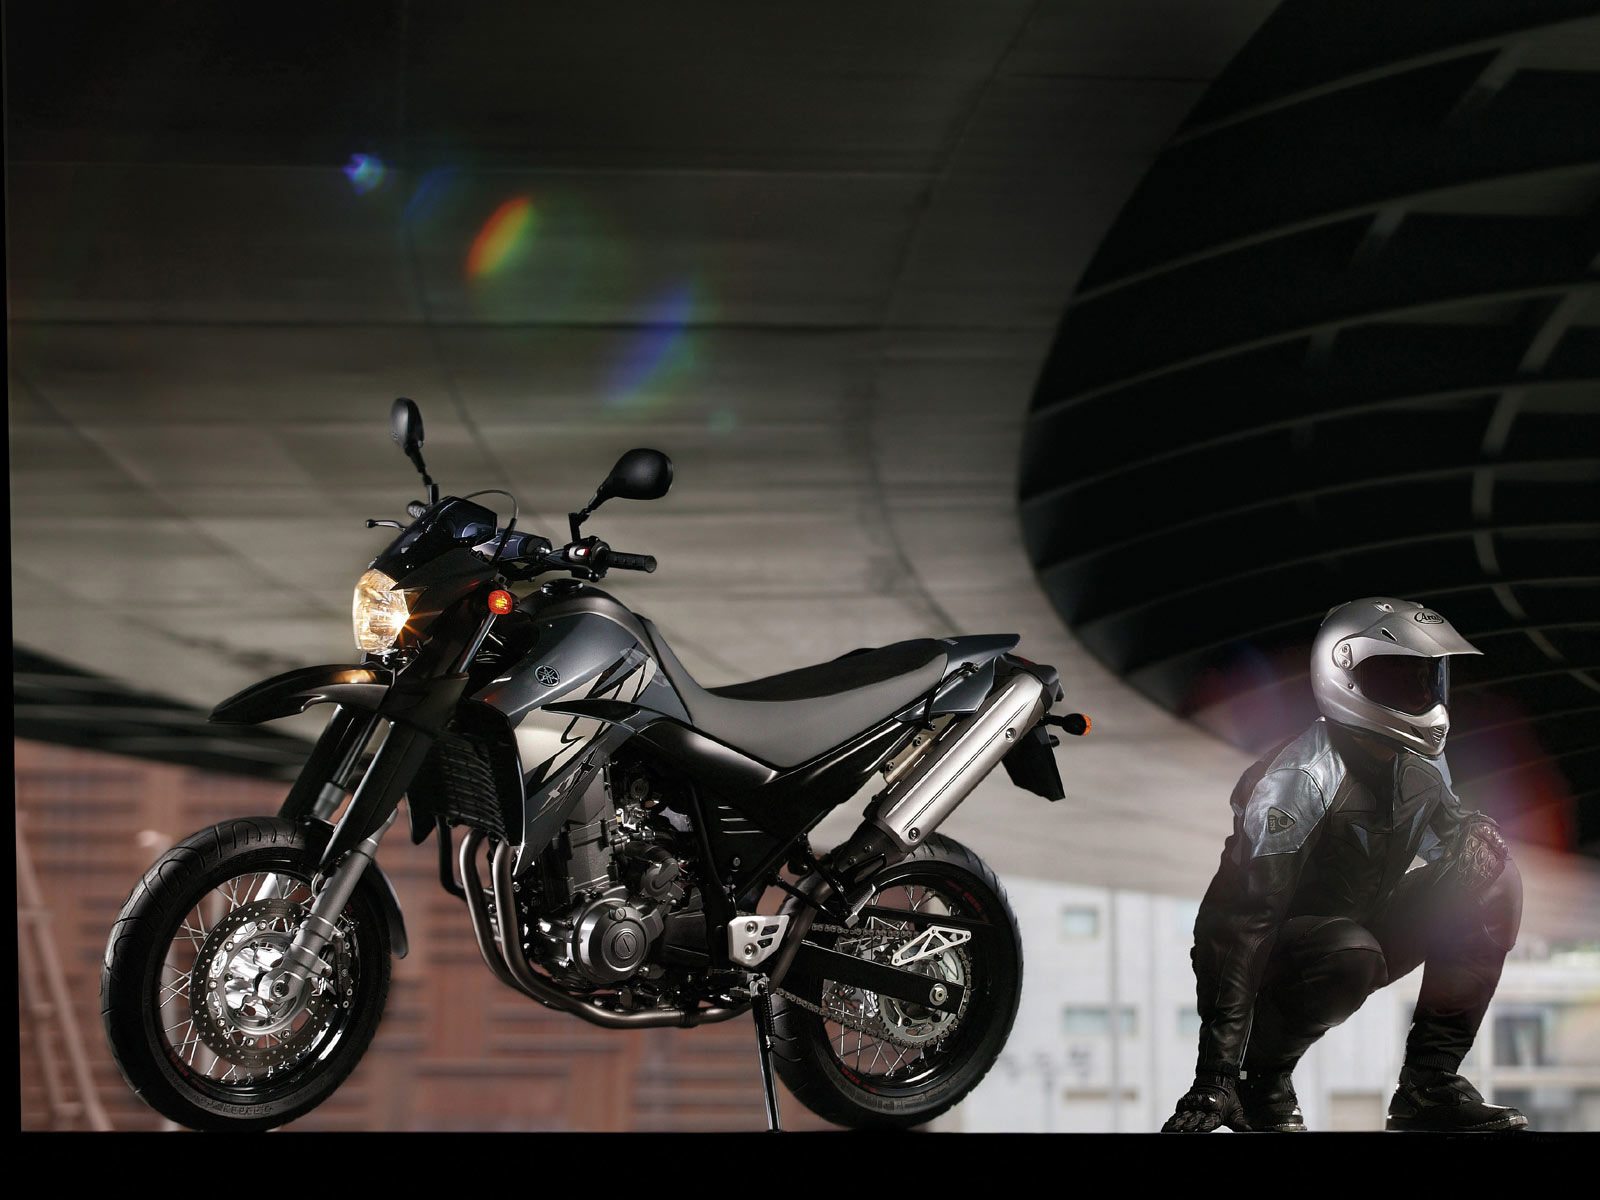 2004 YAMAHA XT660X Supermotard pictures specifications